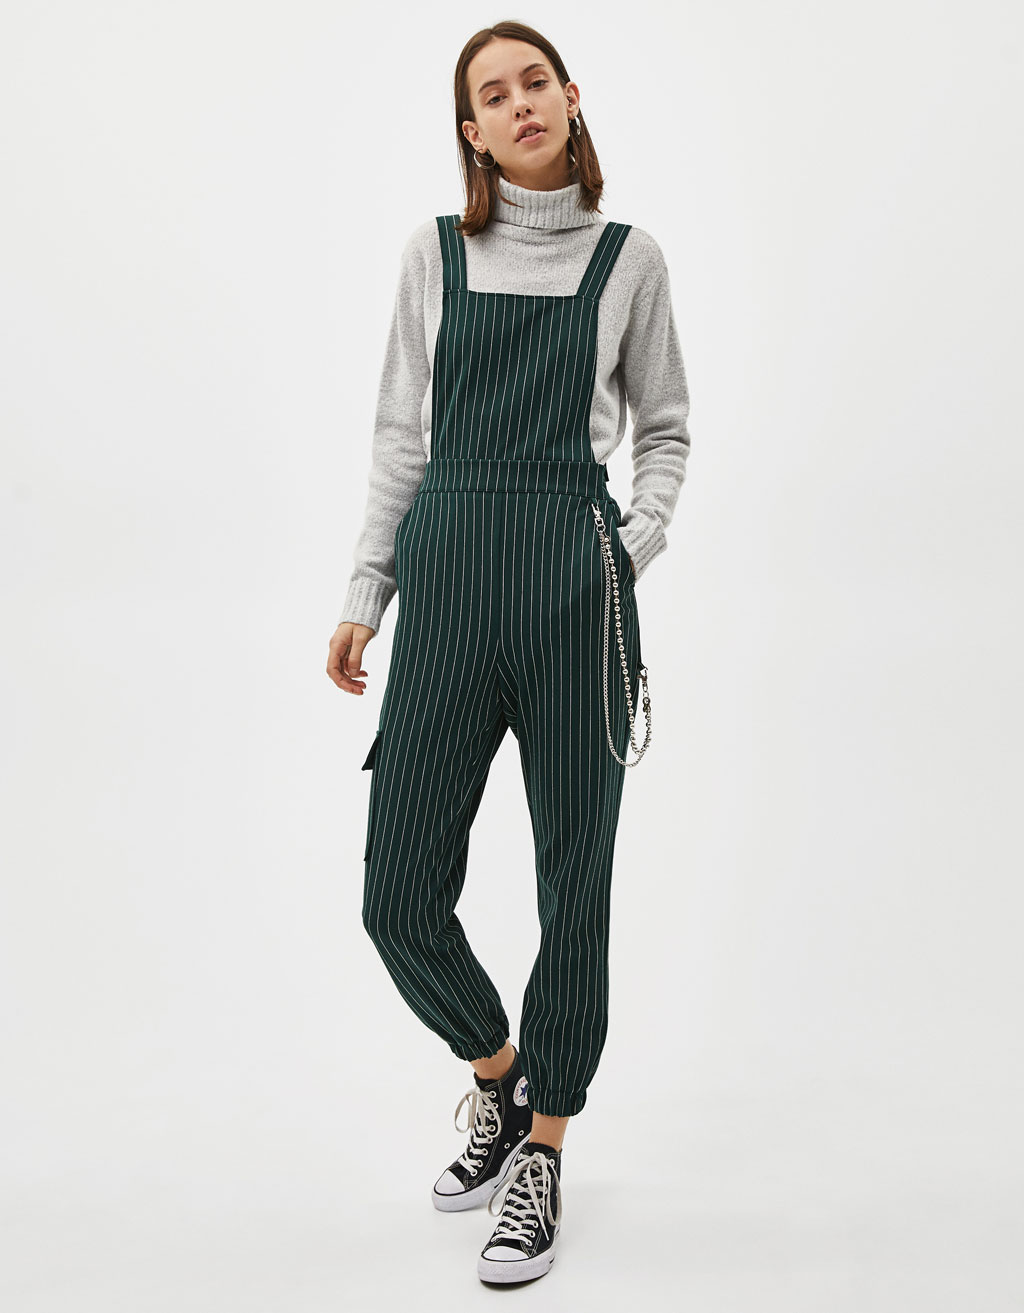 Utility Jumpsuit With Chain by Bershka